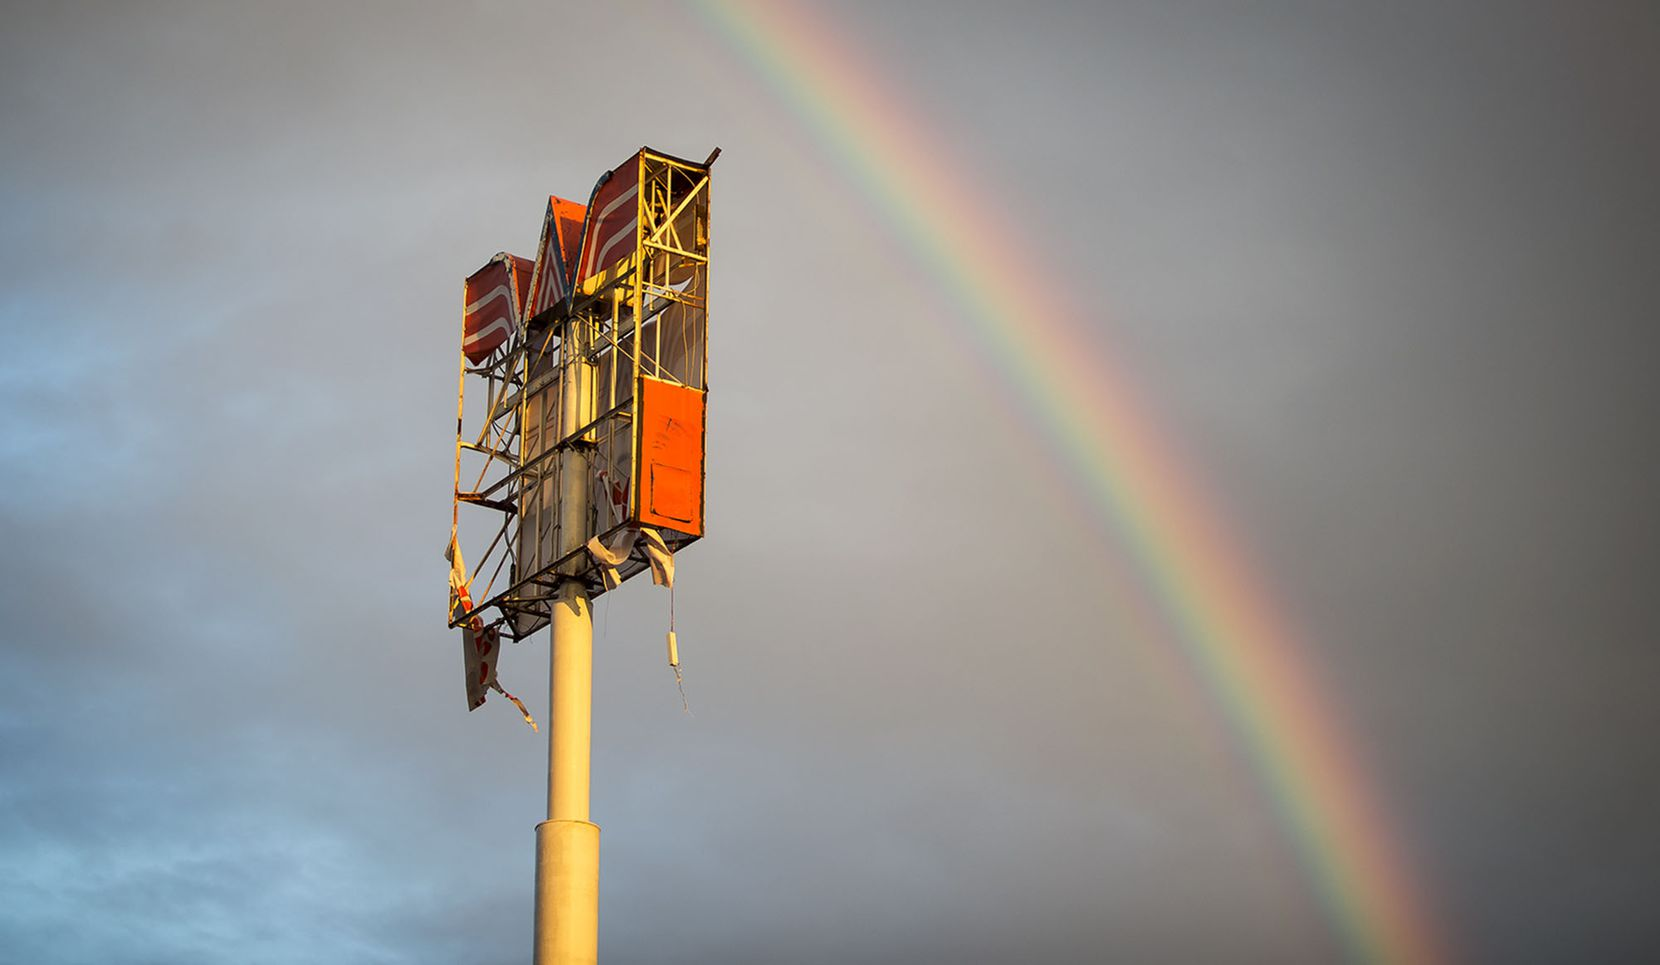 A rainbow appears over over a Whataburger sign that was destroyed by Hurricane Harvey in Refugio, Texas, Monday, Aug. 28, 2017. (Nick Wagner/Austin American-Statesman via AP)